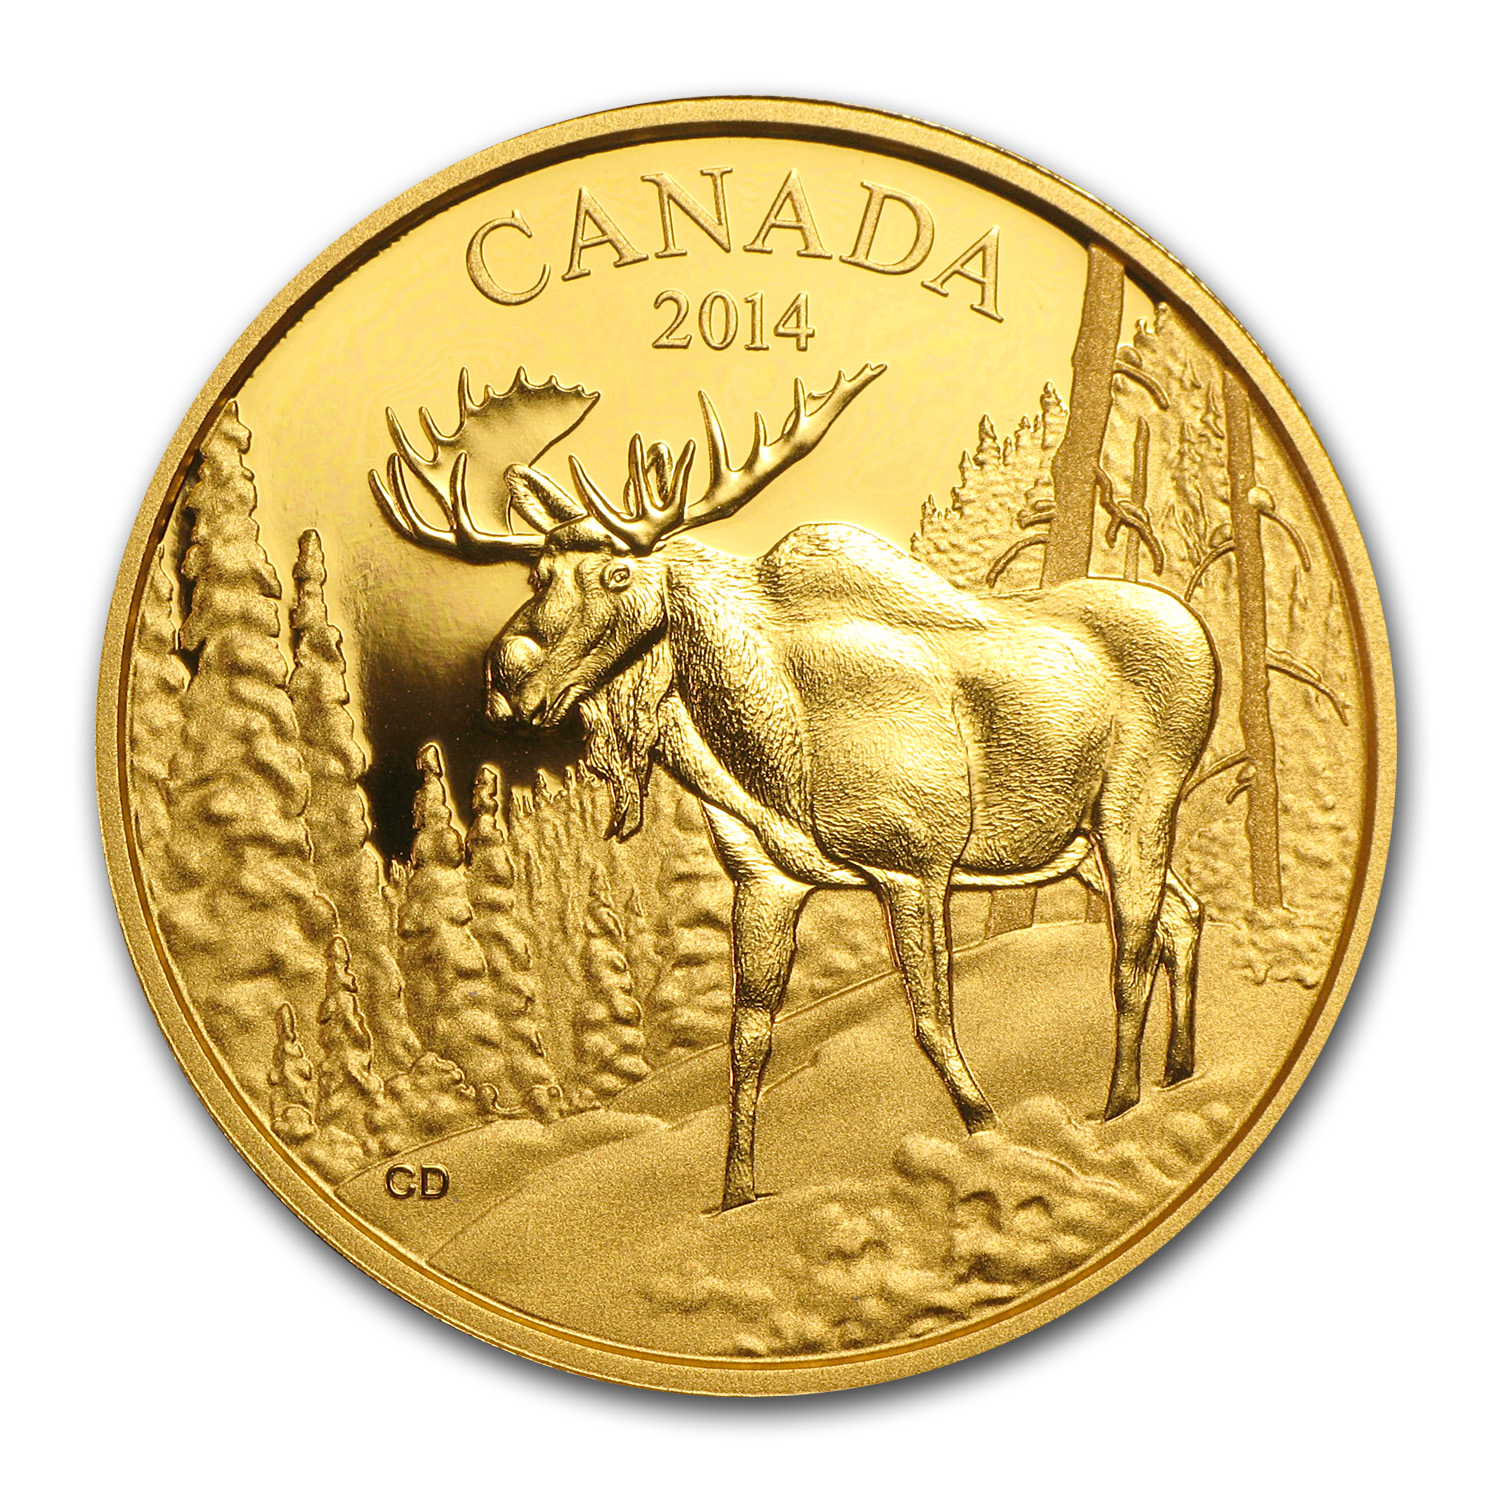 2014 1.12 oz Gold Canadian $350 Coin The Majestic Moose